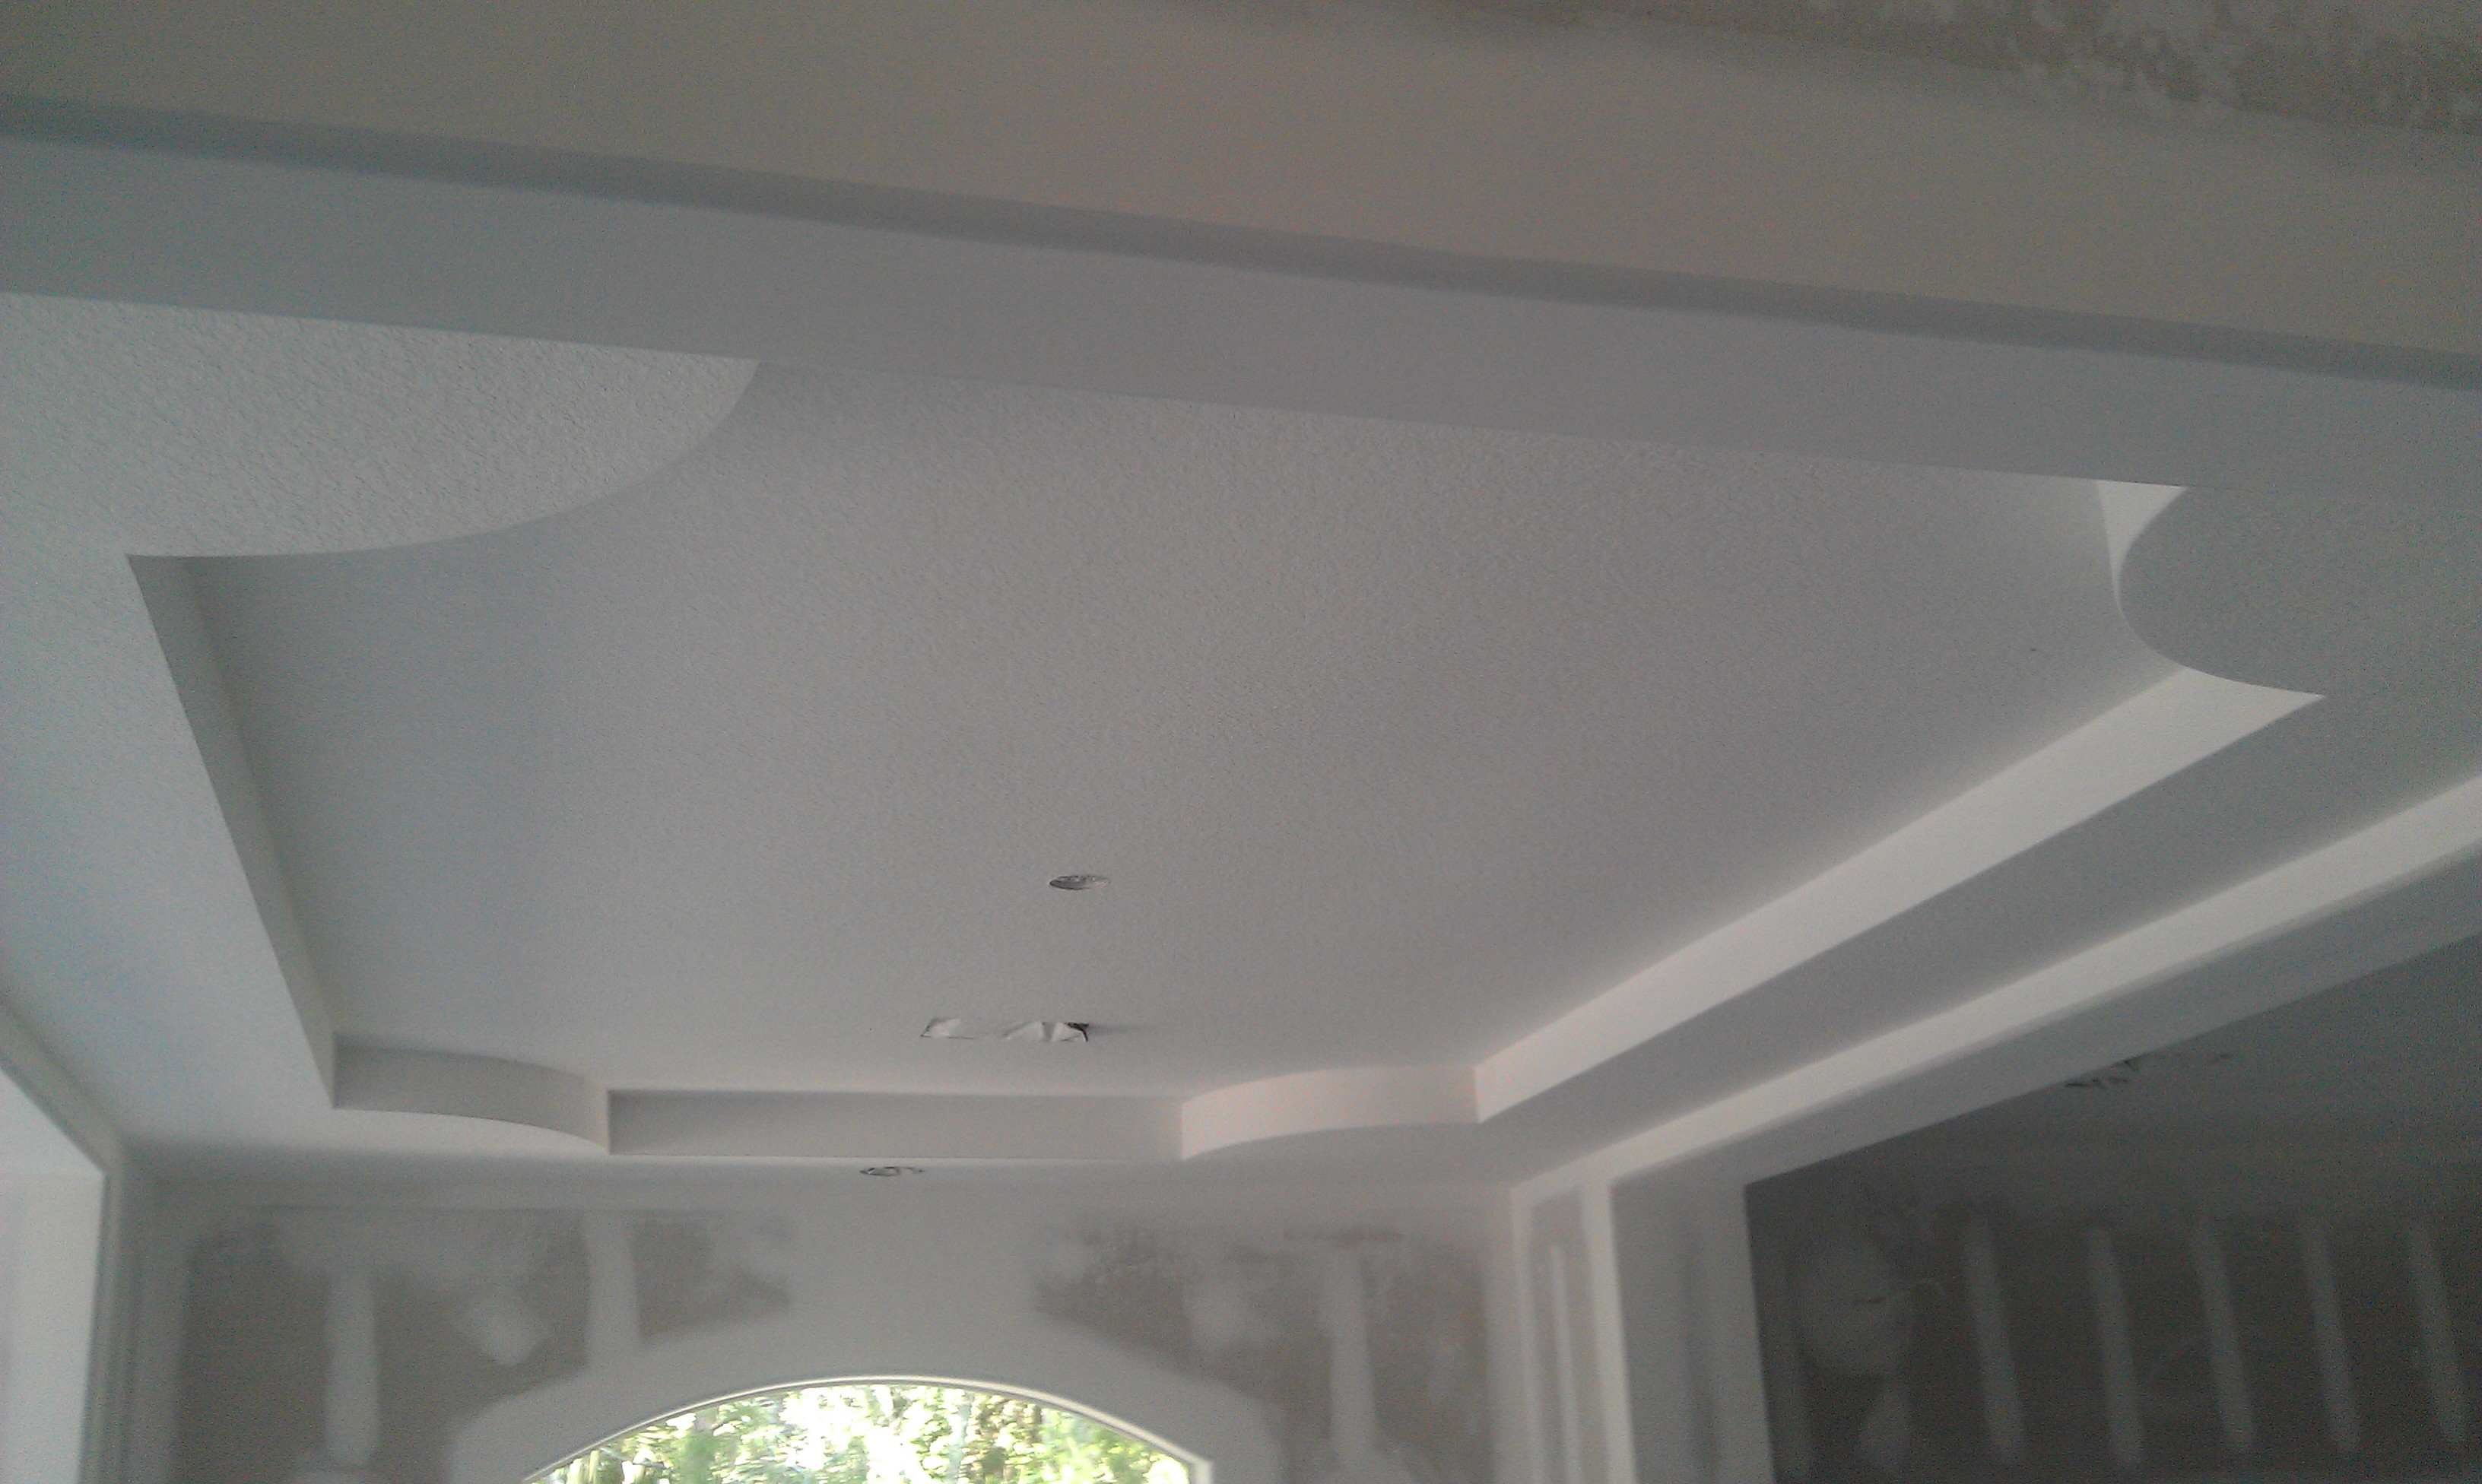 Ceiling contractor in Jacksonville Drywall and Popcorn Removal